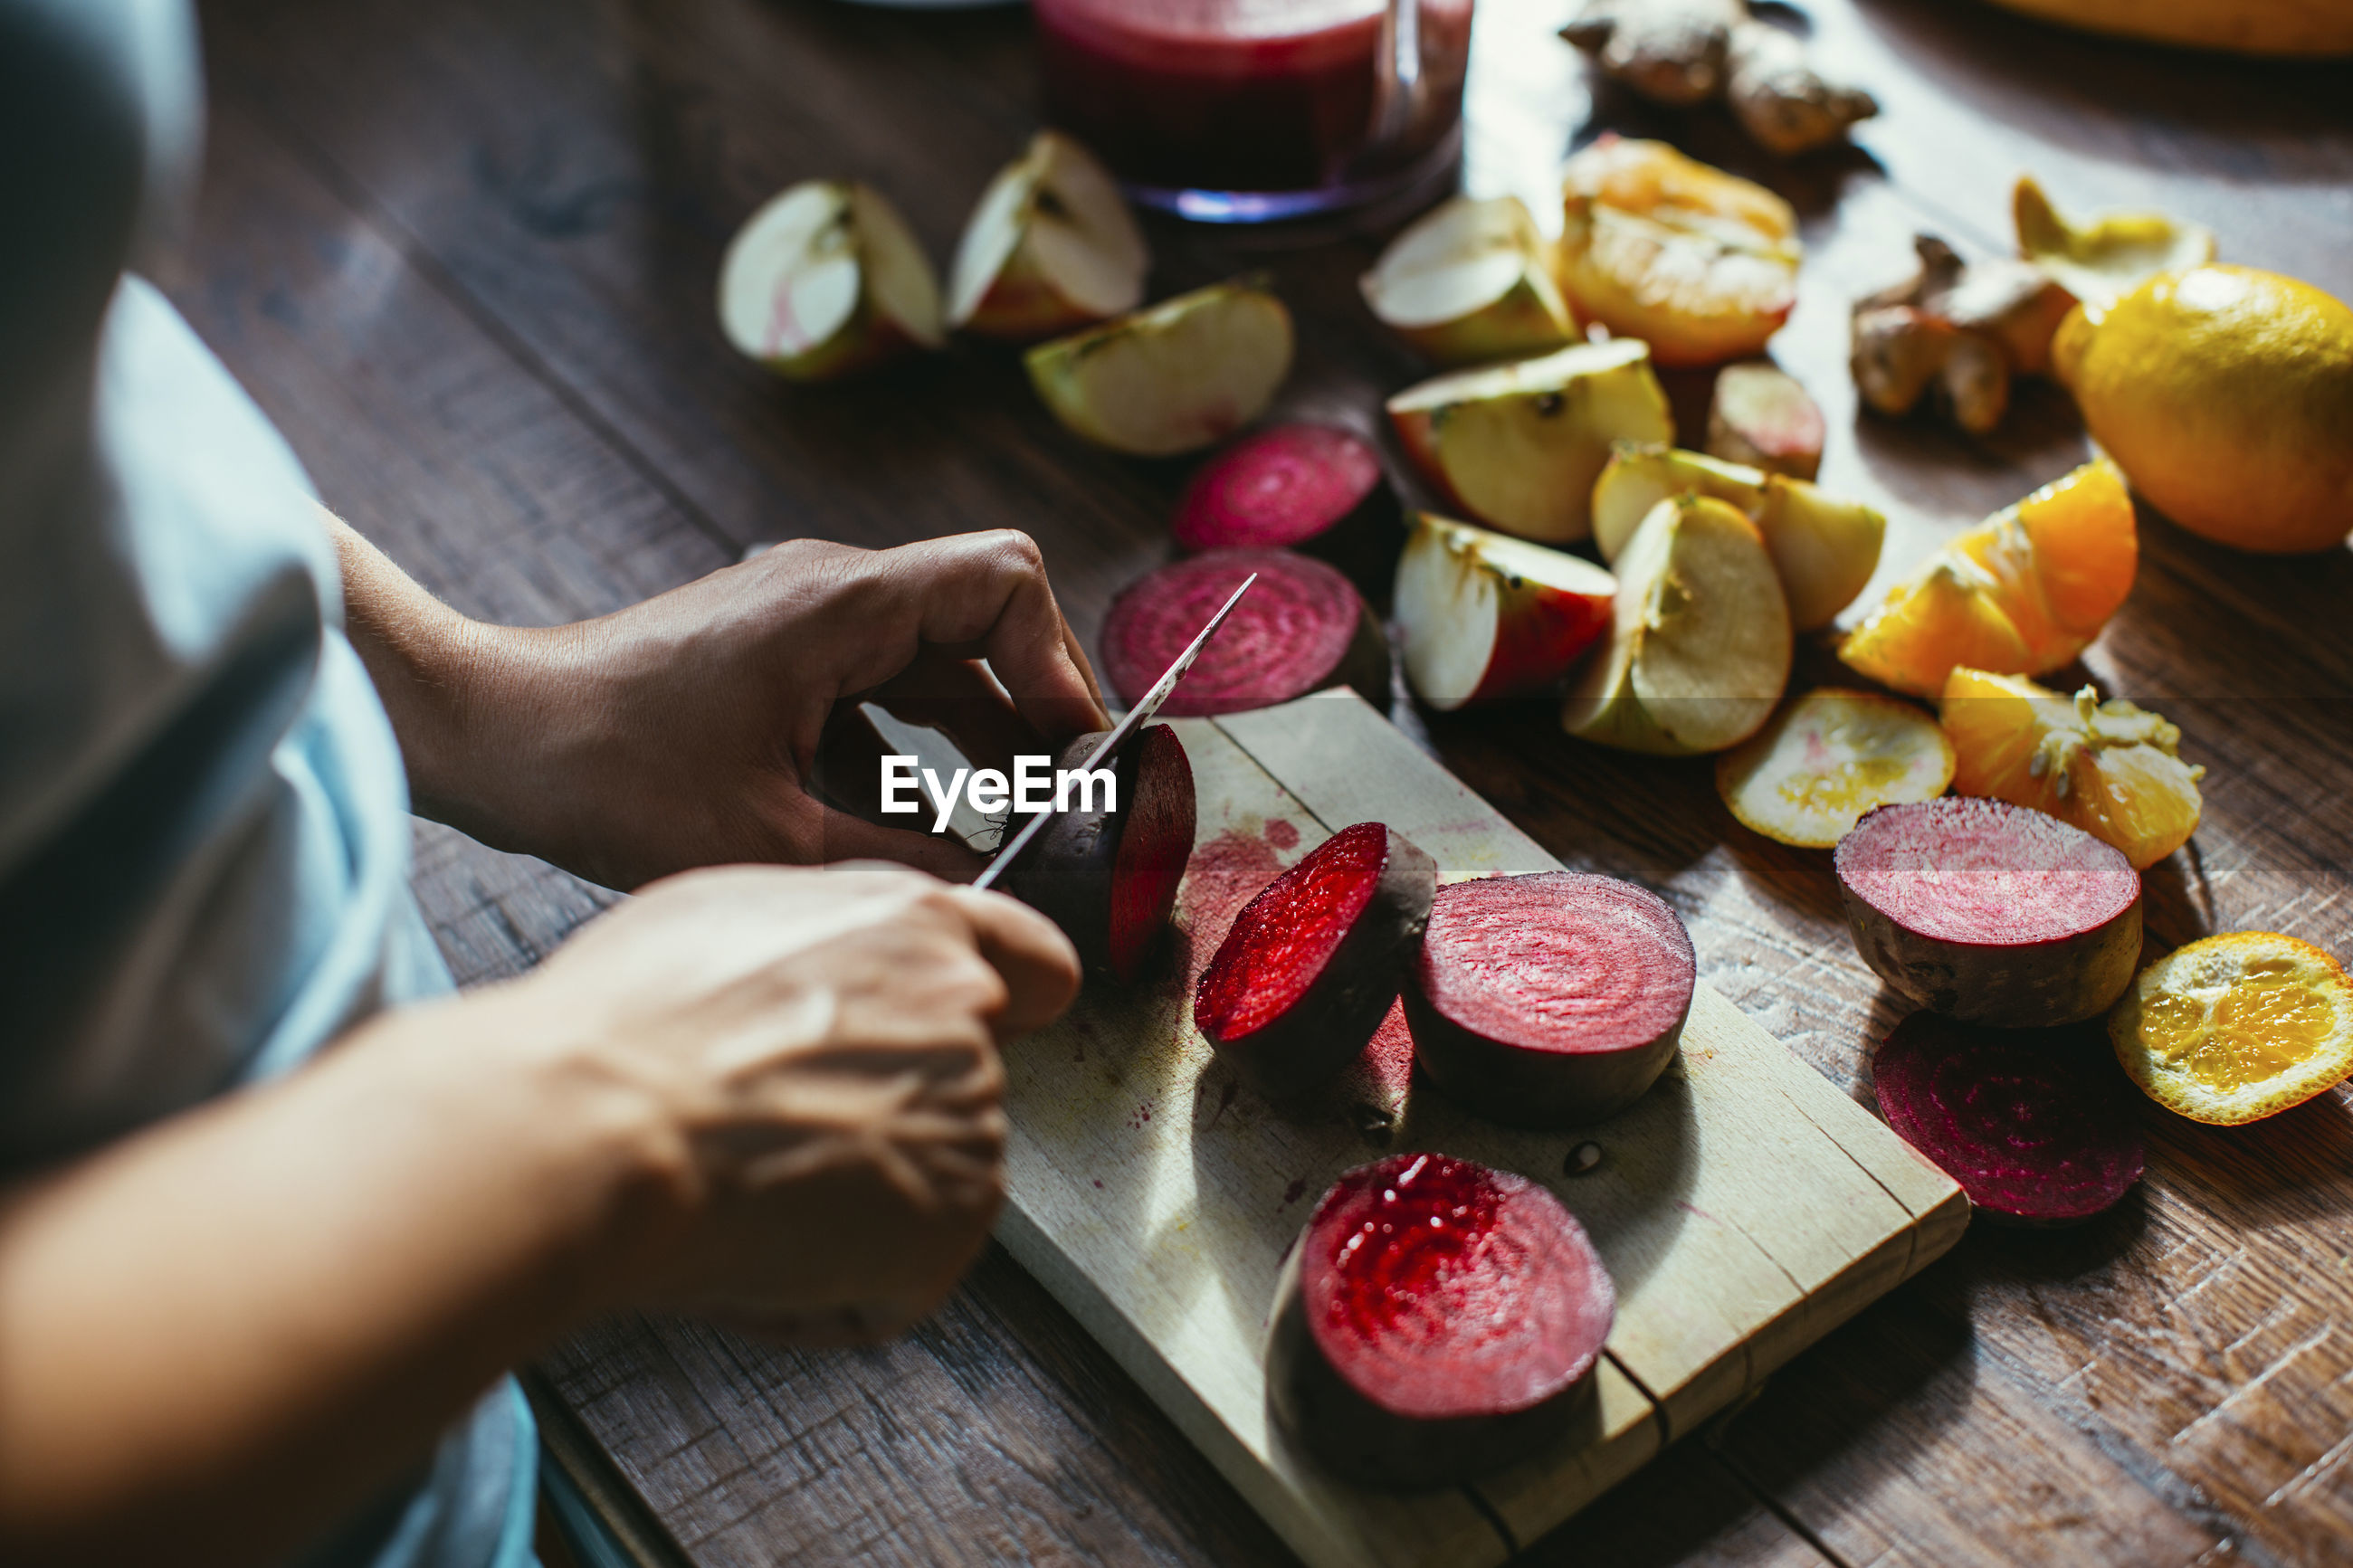 HIGH ANGLE VIEW OF HAND HOLDING FRUITS ON TABLE